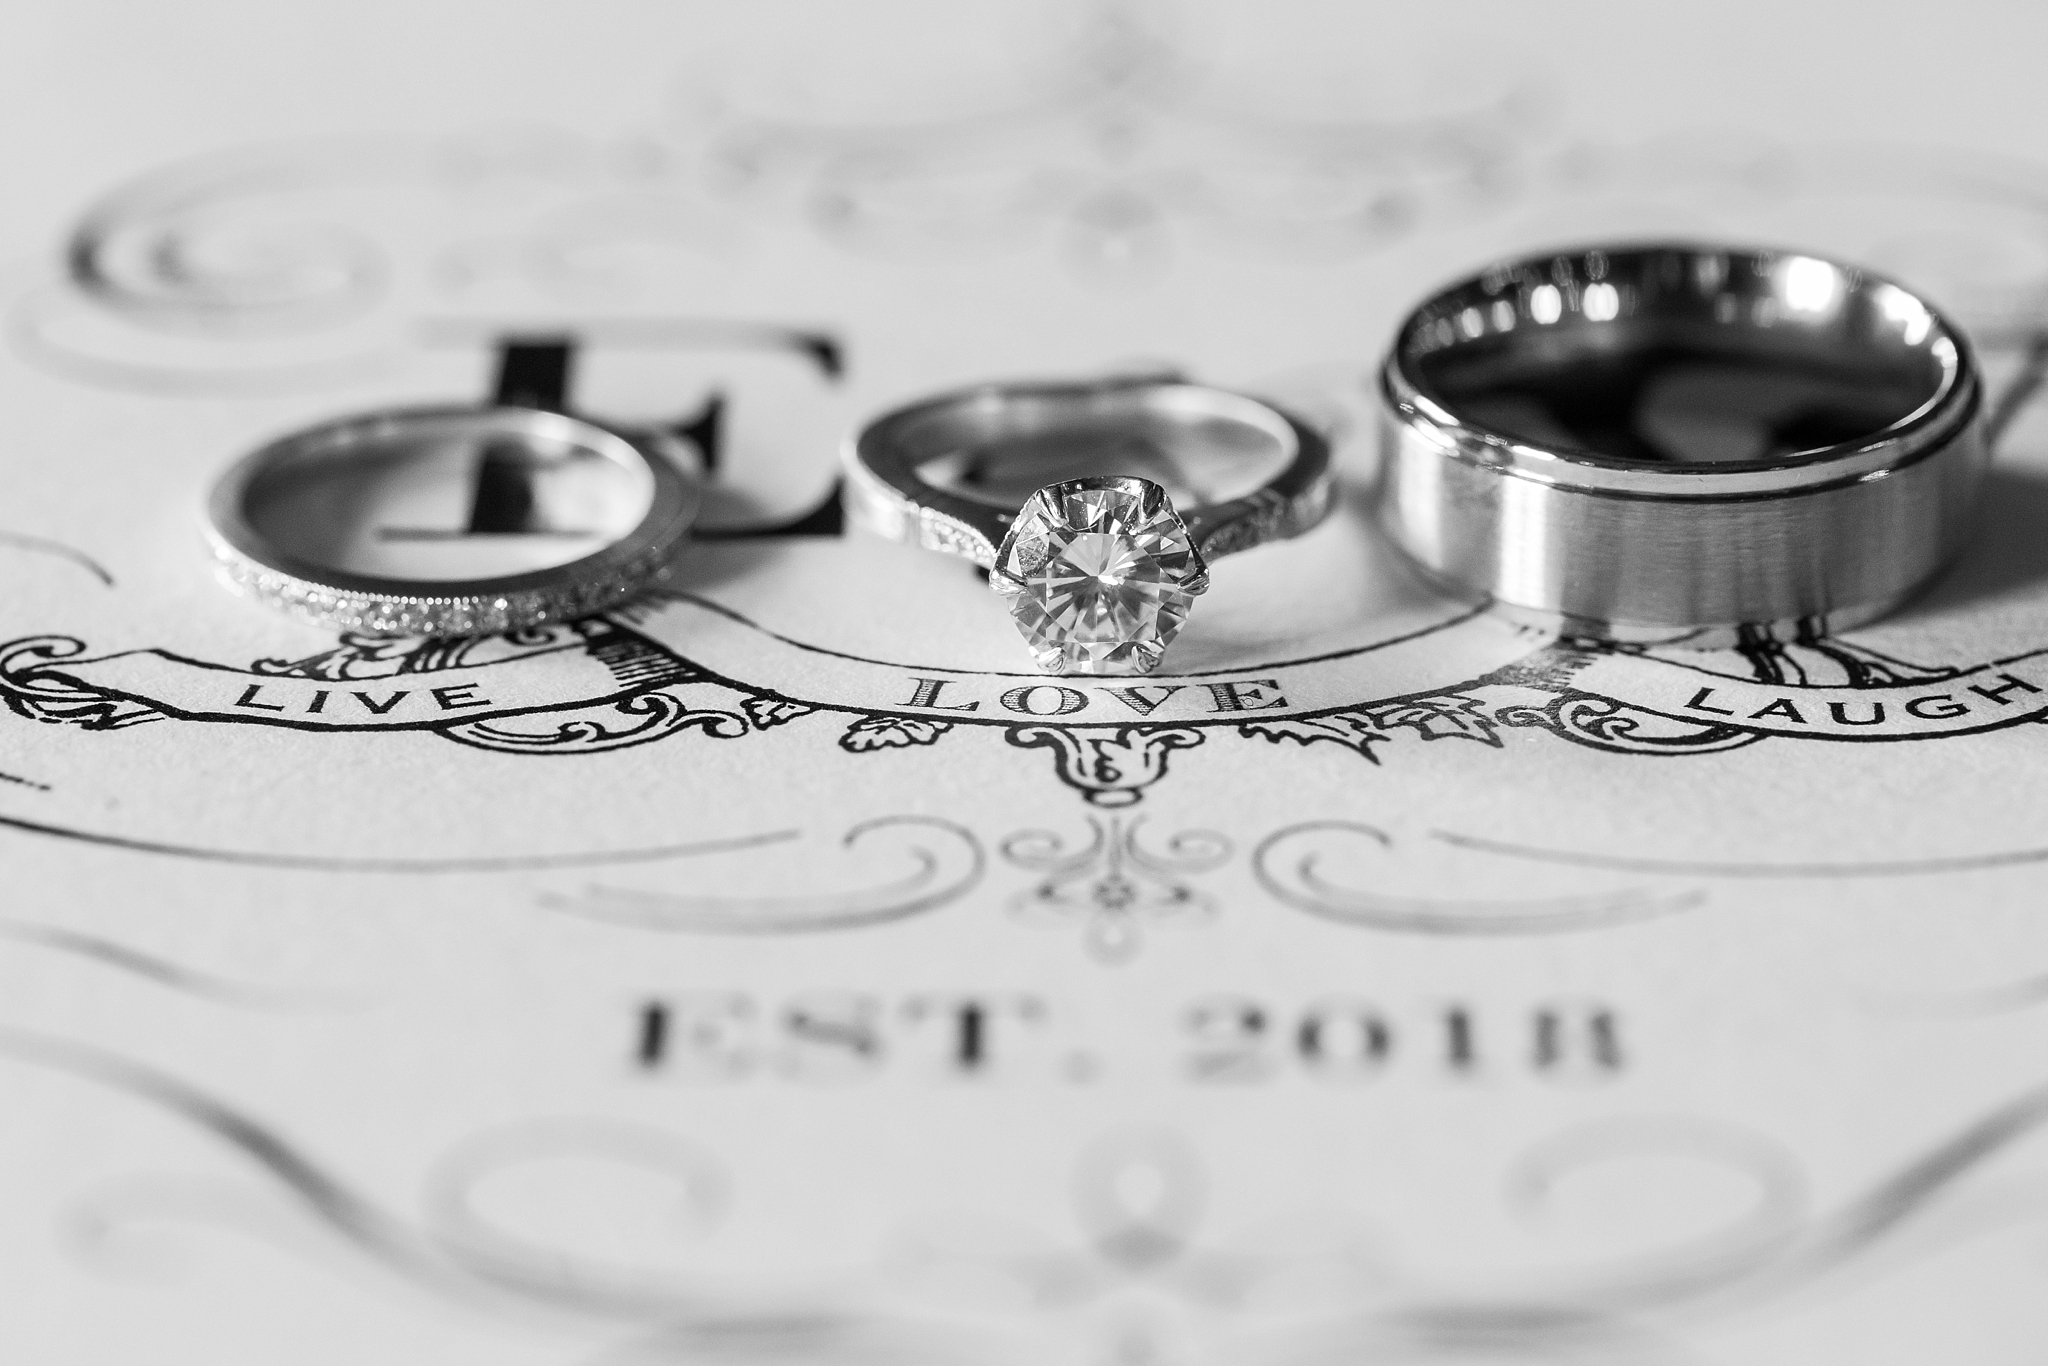 candid-romantic-wedding-photos-at-the-masonic-temple-belle-isle-detroit-institute-of-arts-in-detroit-michigan-by-courtney-carolyn-photography_0029.jpg